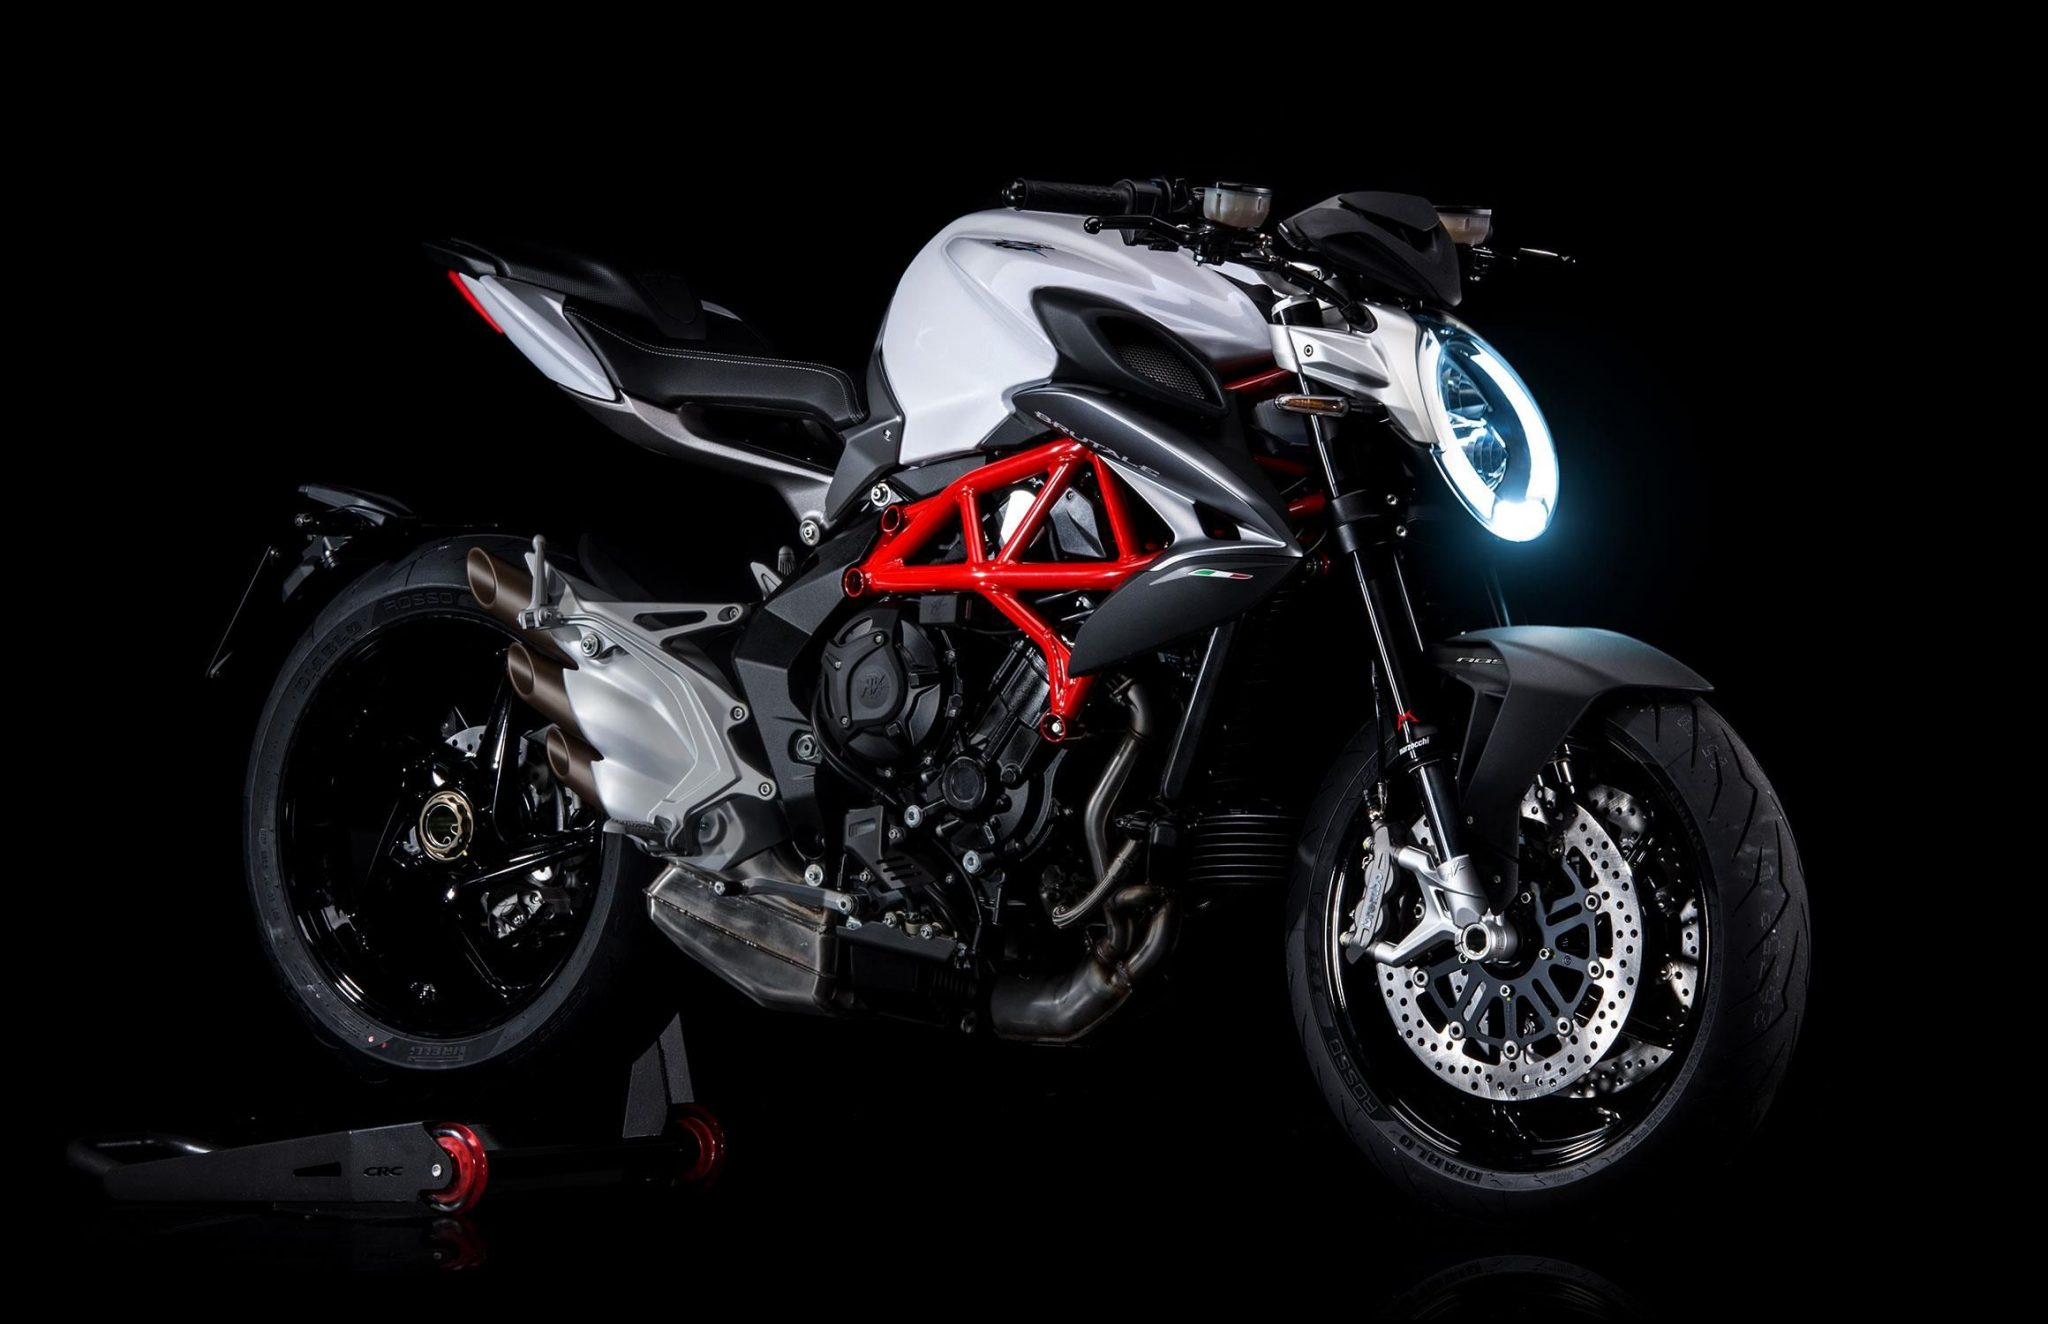 MV Agusta confirms all-new four-cylinder engine - to debut in 2018